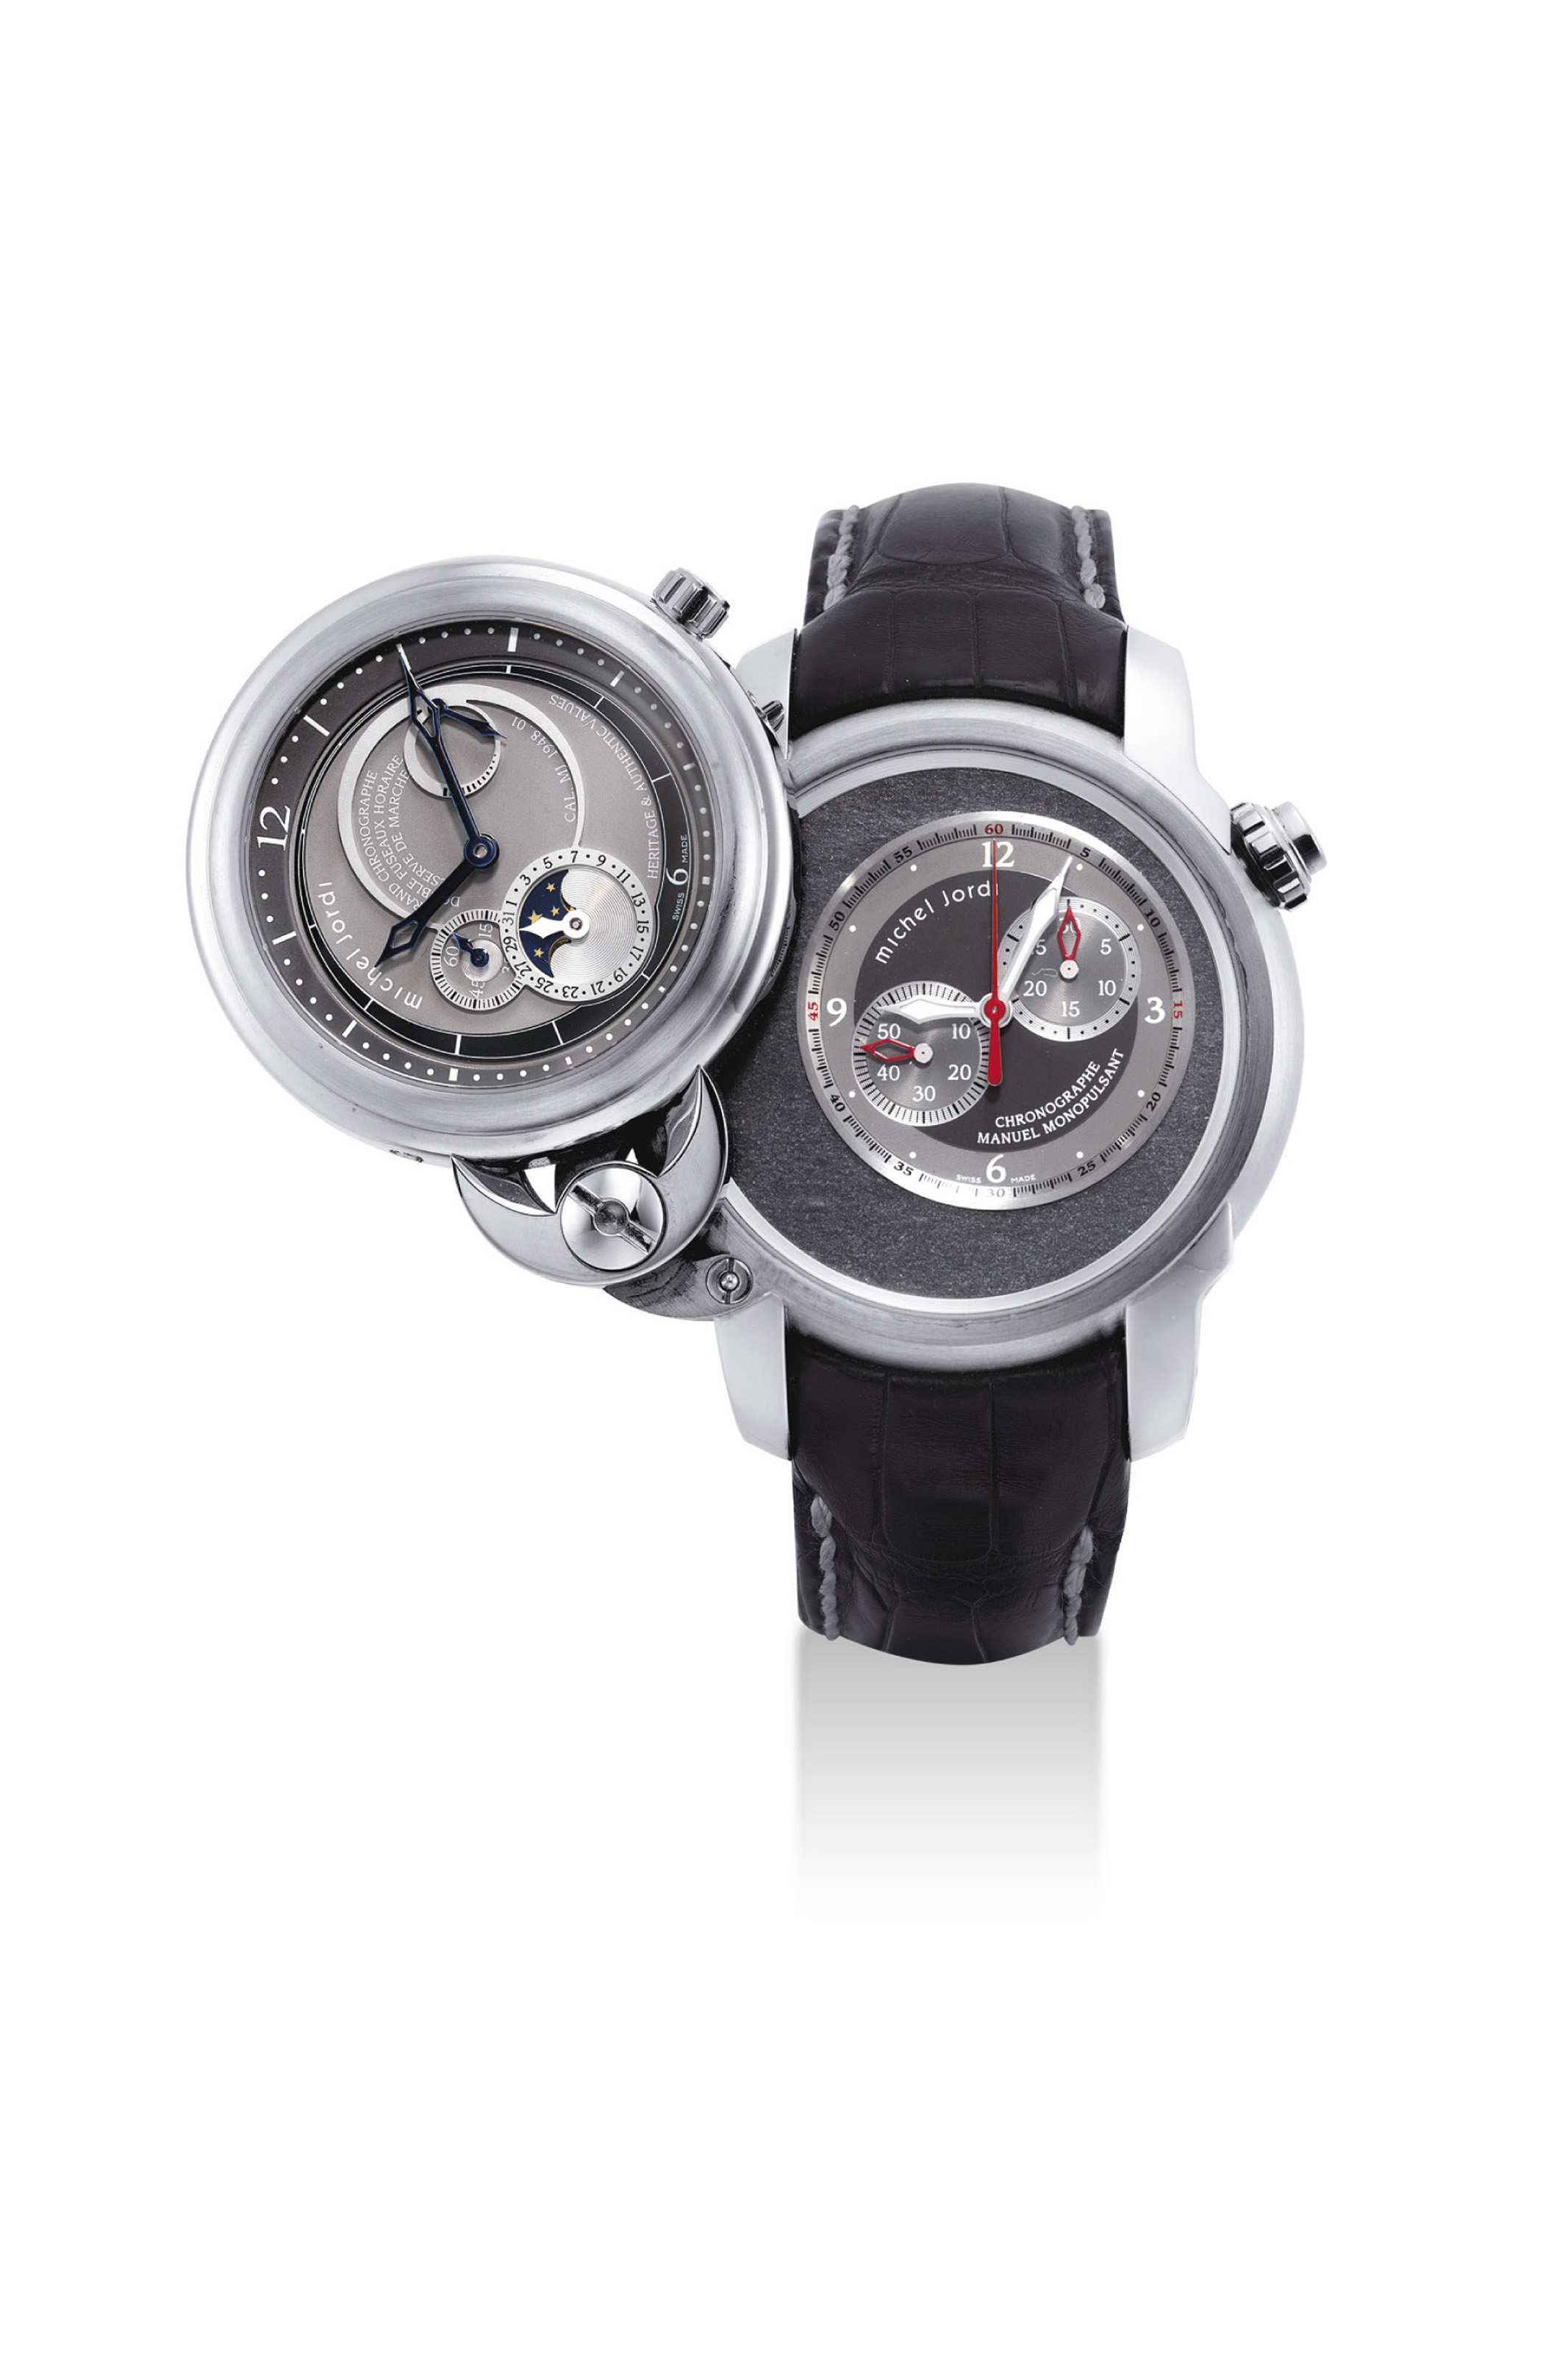 MICHEL JORDI. A RARE AND UNUSUAL 18K WHITE GOLD LIMITED EDITION TWIN CASE TWO TIME ZONES SINGLE BUTTON CHRONOGRAPH WRISTWATCH WITH TWO INDEPENDENT MOVEMENTS, POWER RESERVE, DATE, MOON PHASES AND SLATE ROCK DIAL